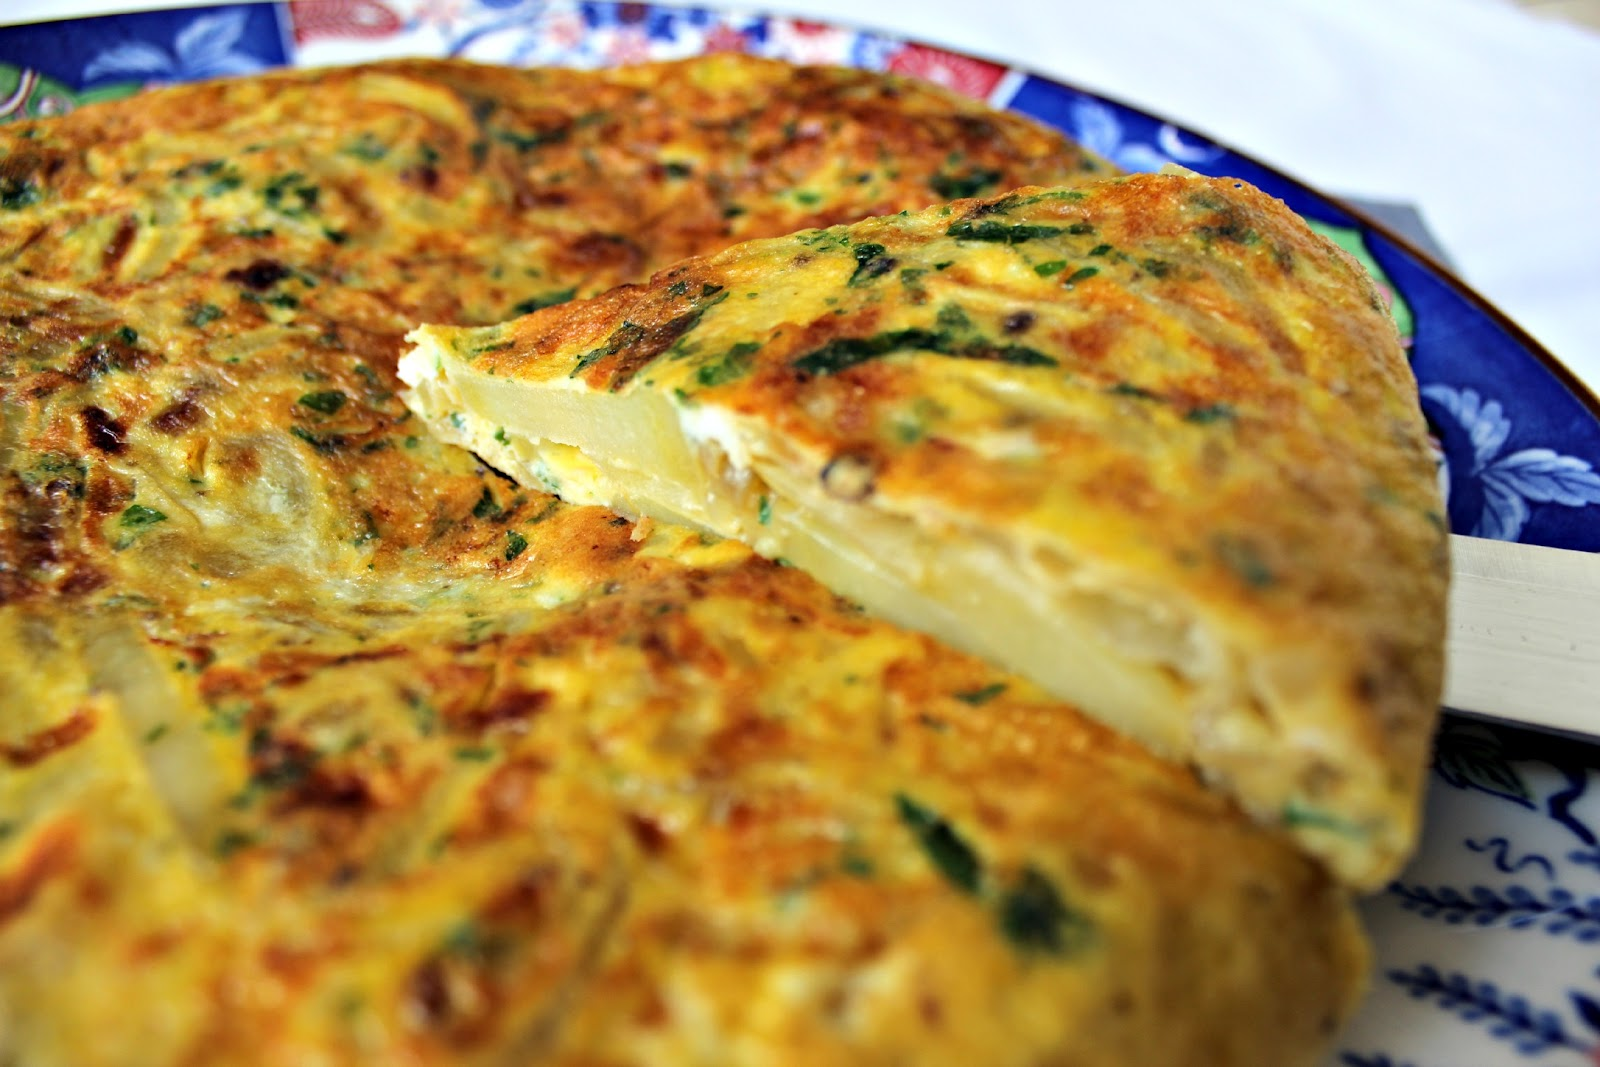 Milk and Honey: Tasty Potato and Onion Frittata